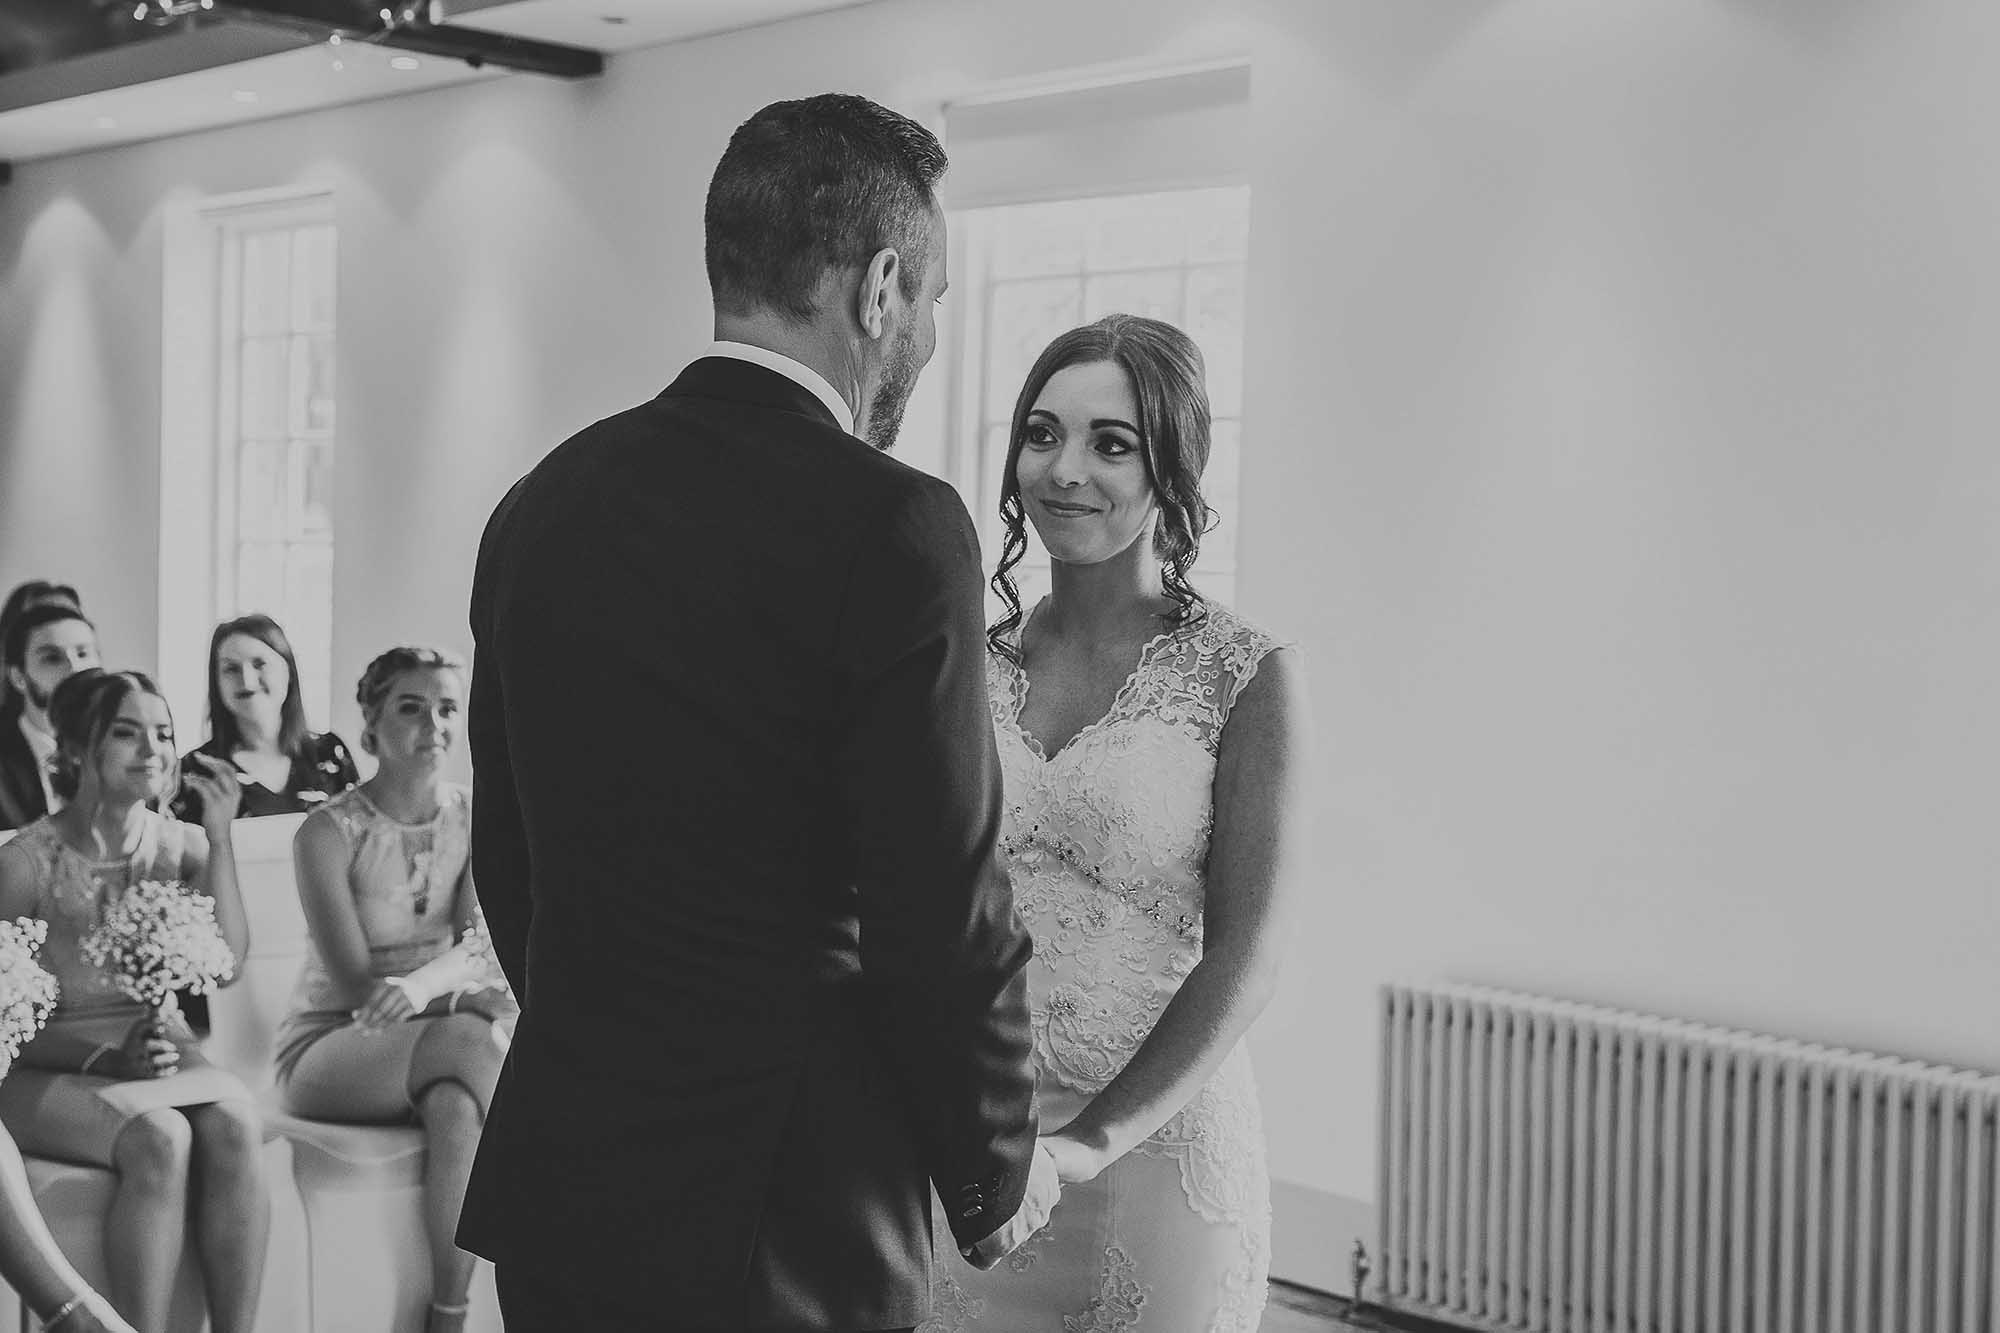 wedding ceremony at The Castlefield Rooms